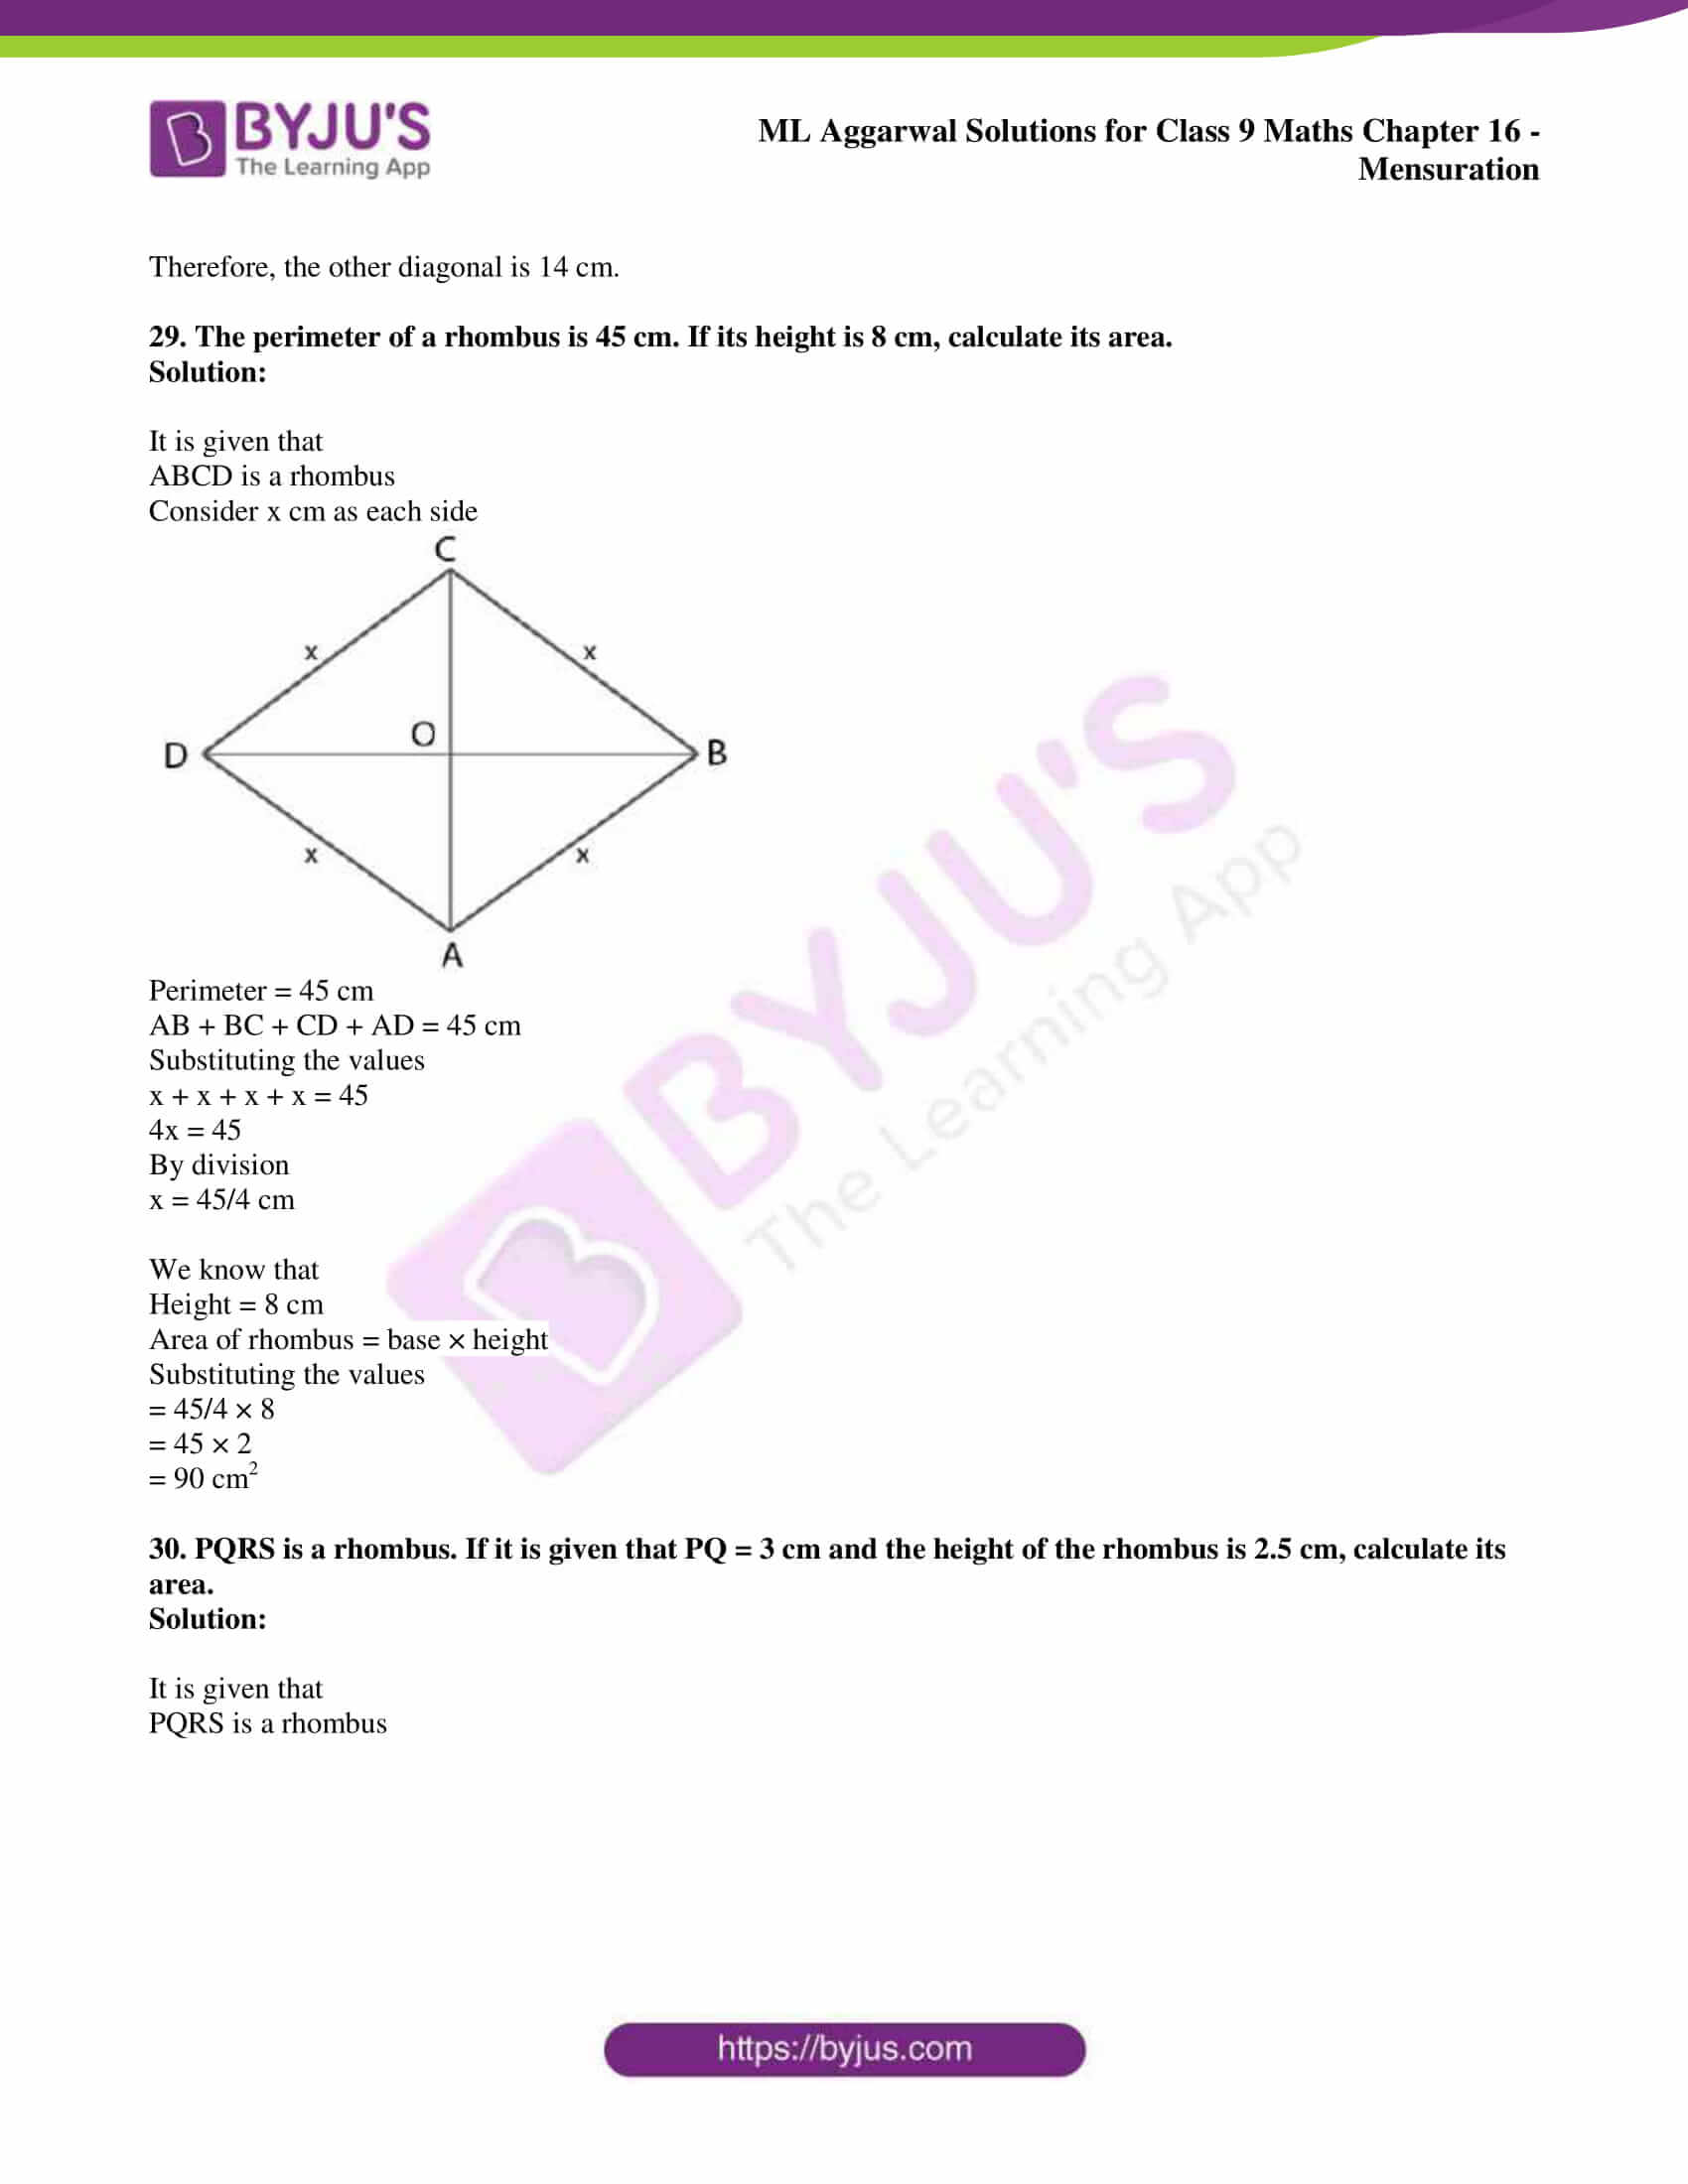 ml aggarwal solutions for class 9 maths chapter 16 051